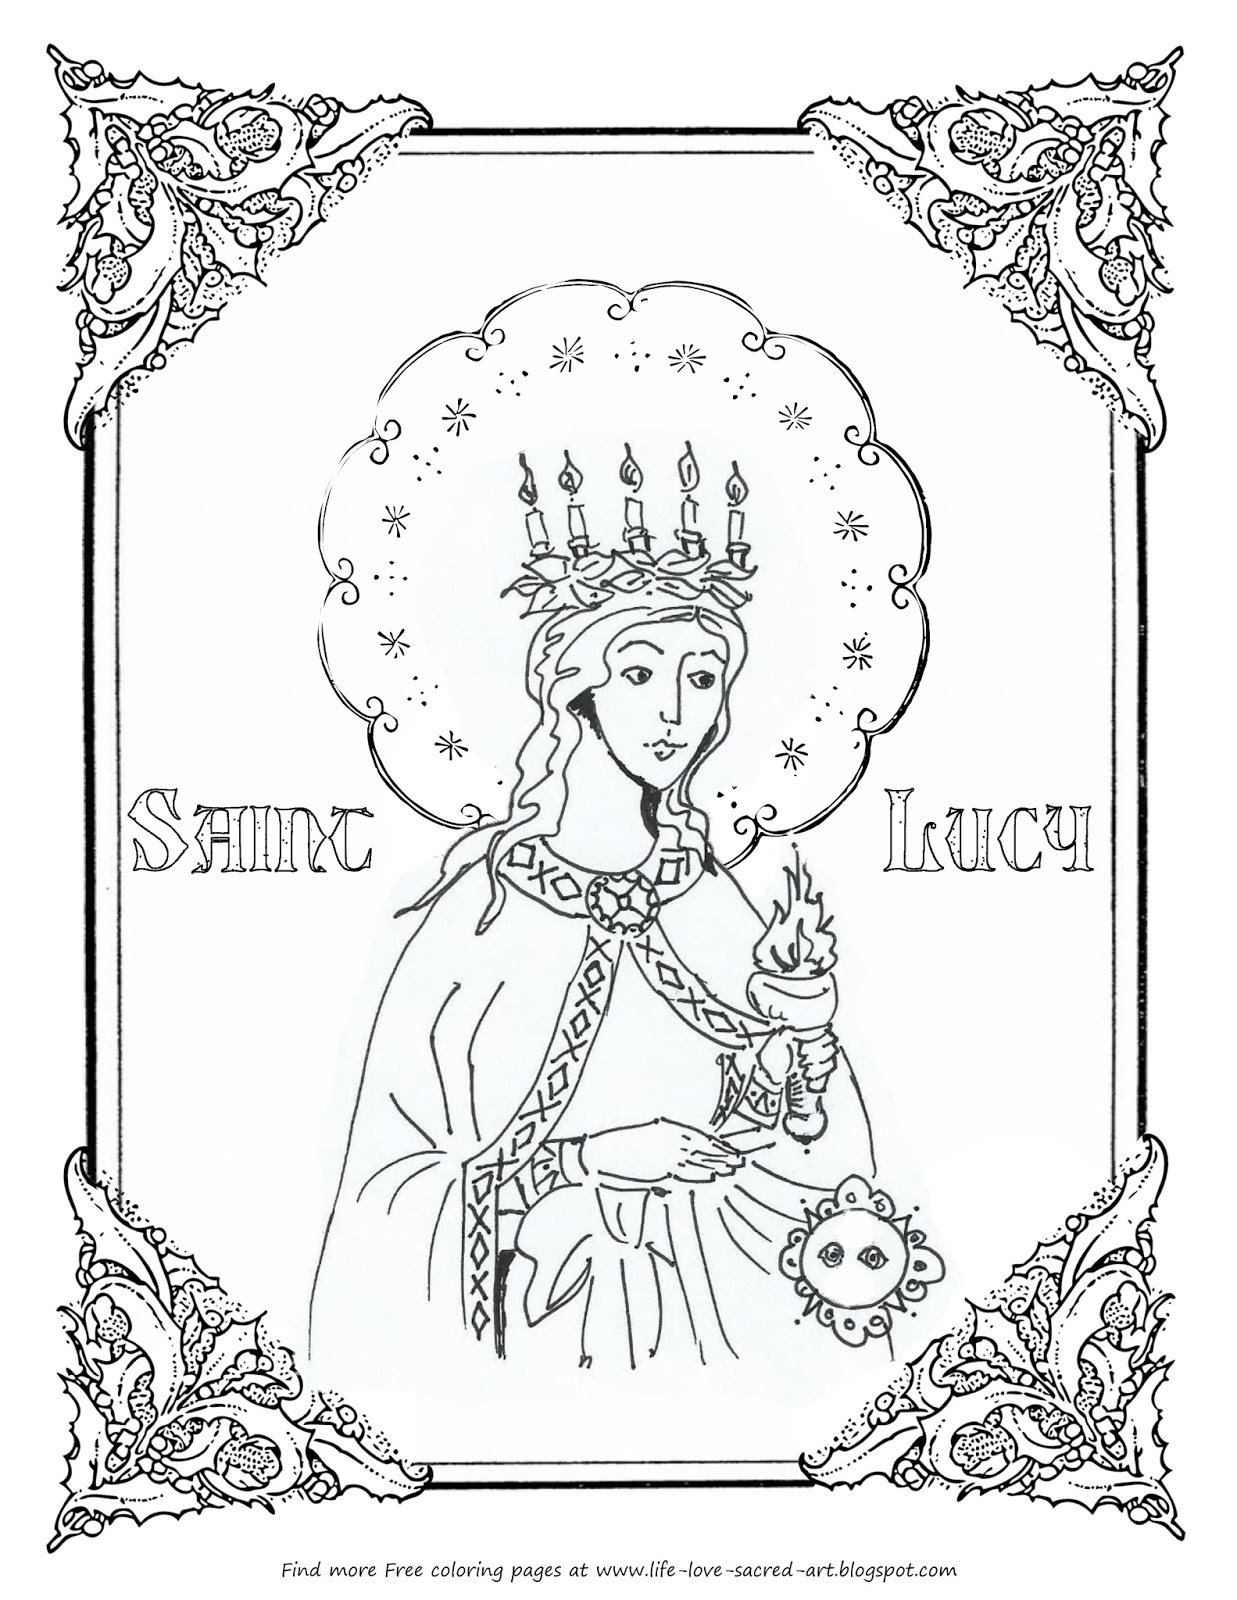 St Lucia Coloring Download St Lucia Coloring For Free